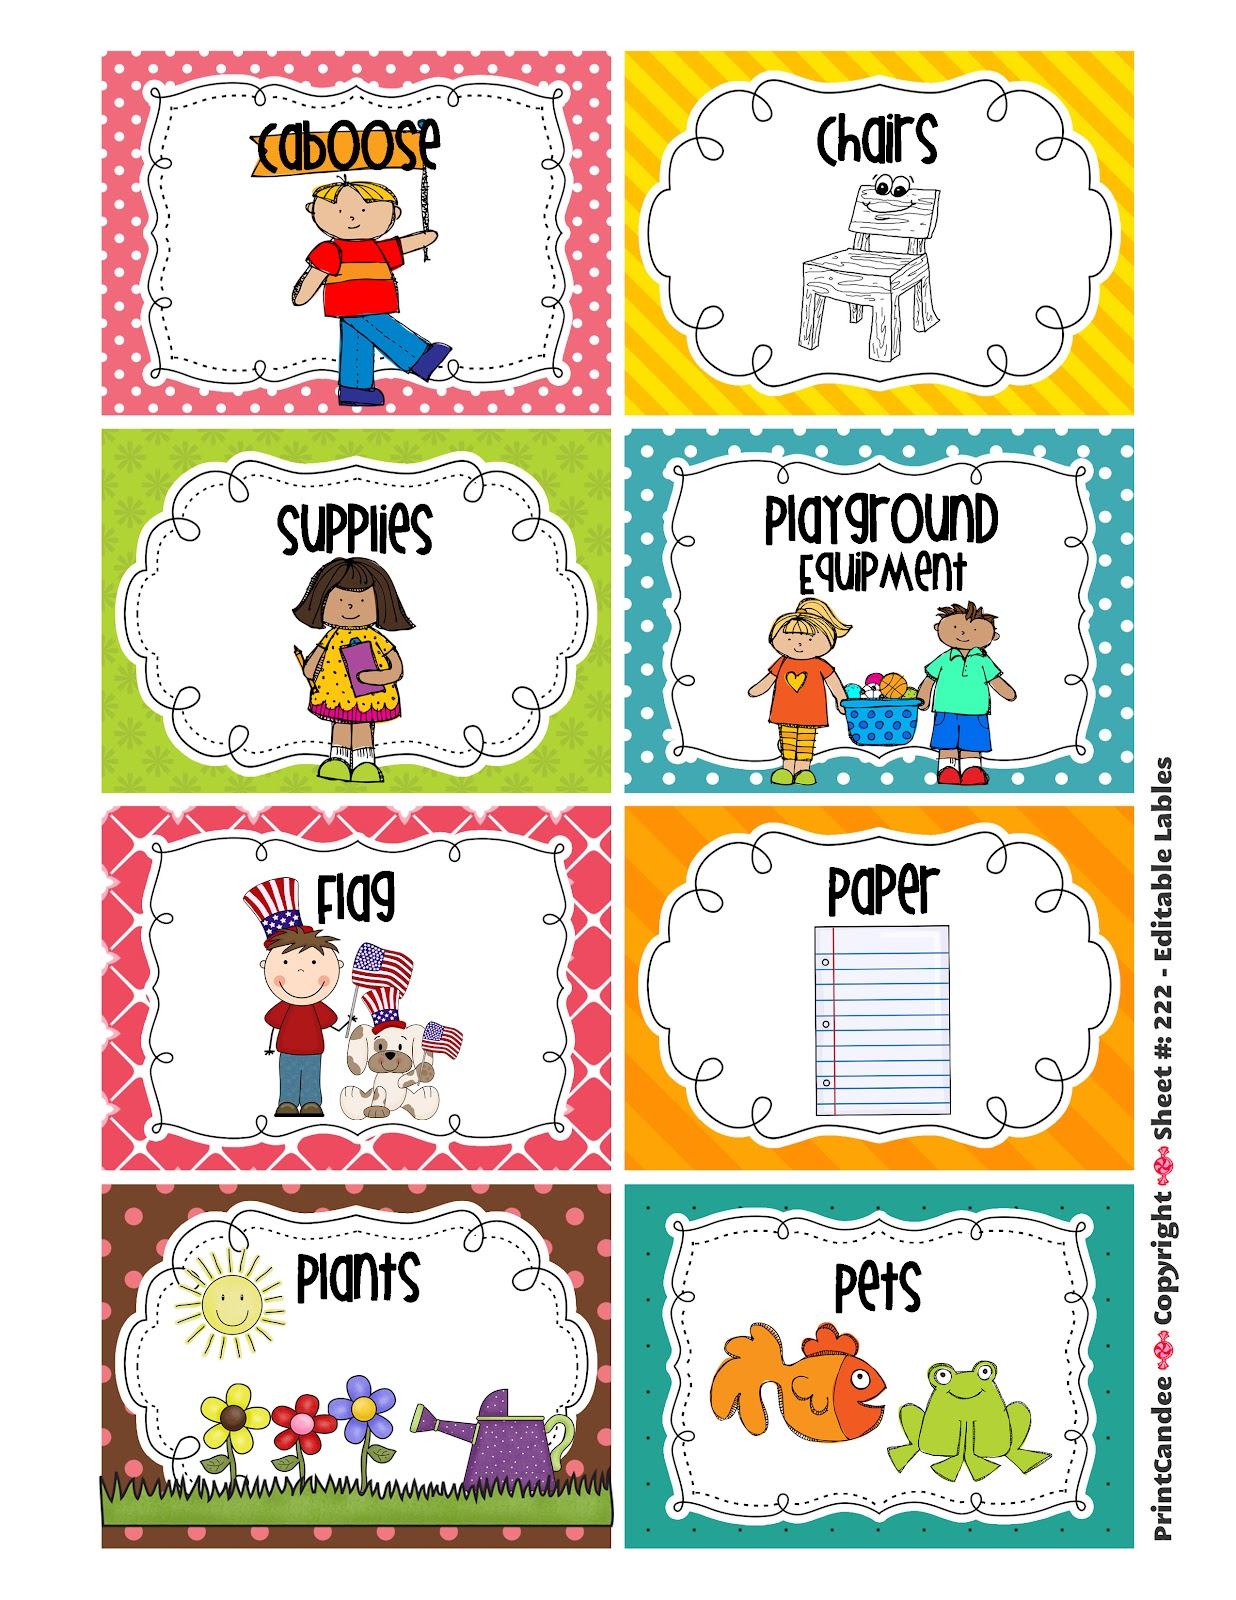 kindergarten clipart classroom jobs - photo #3